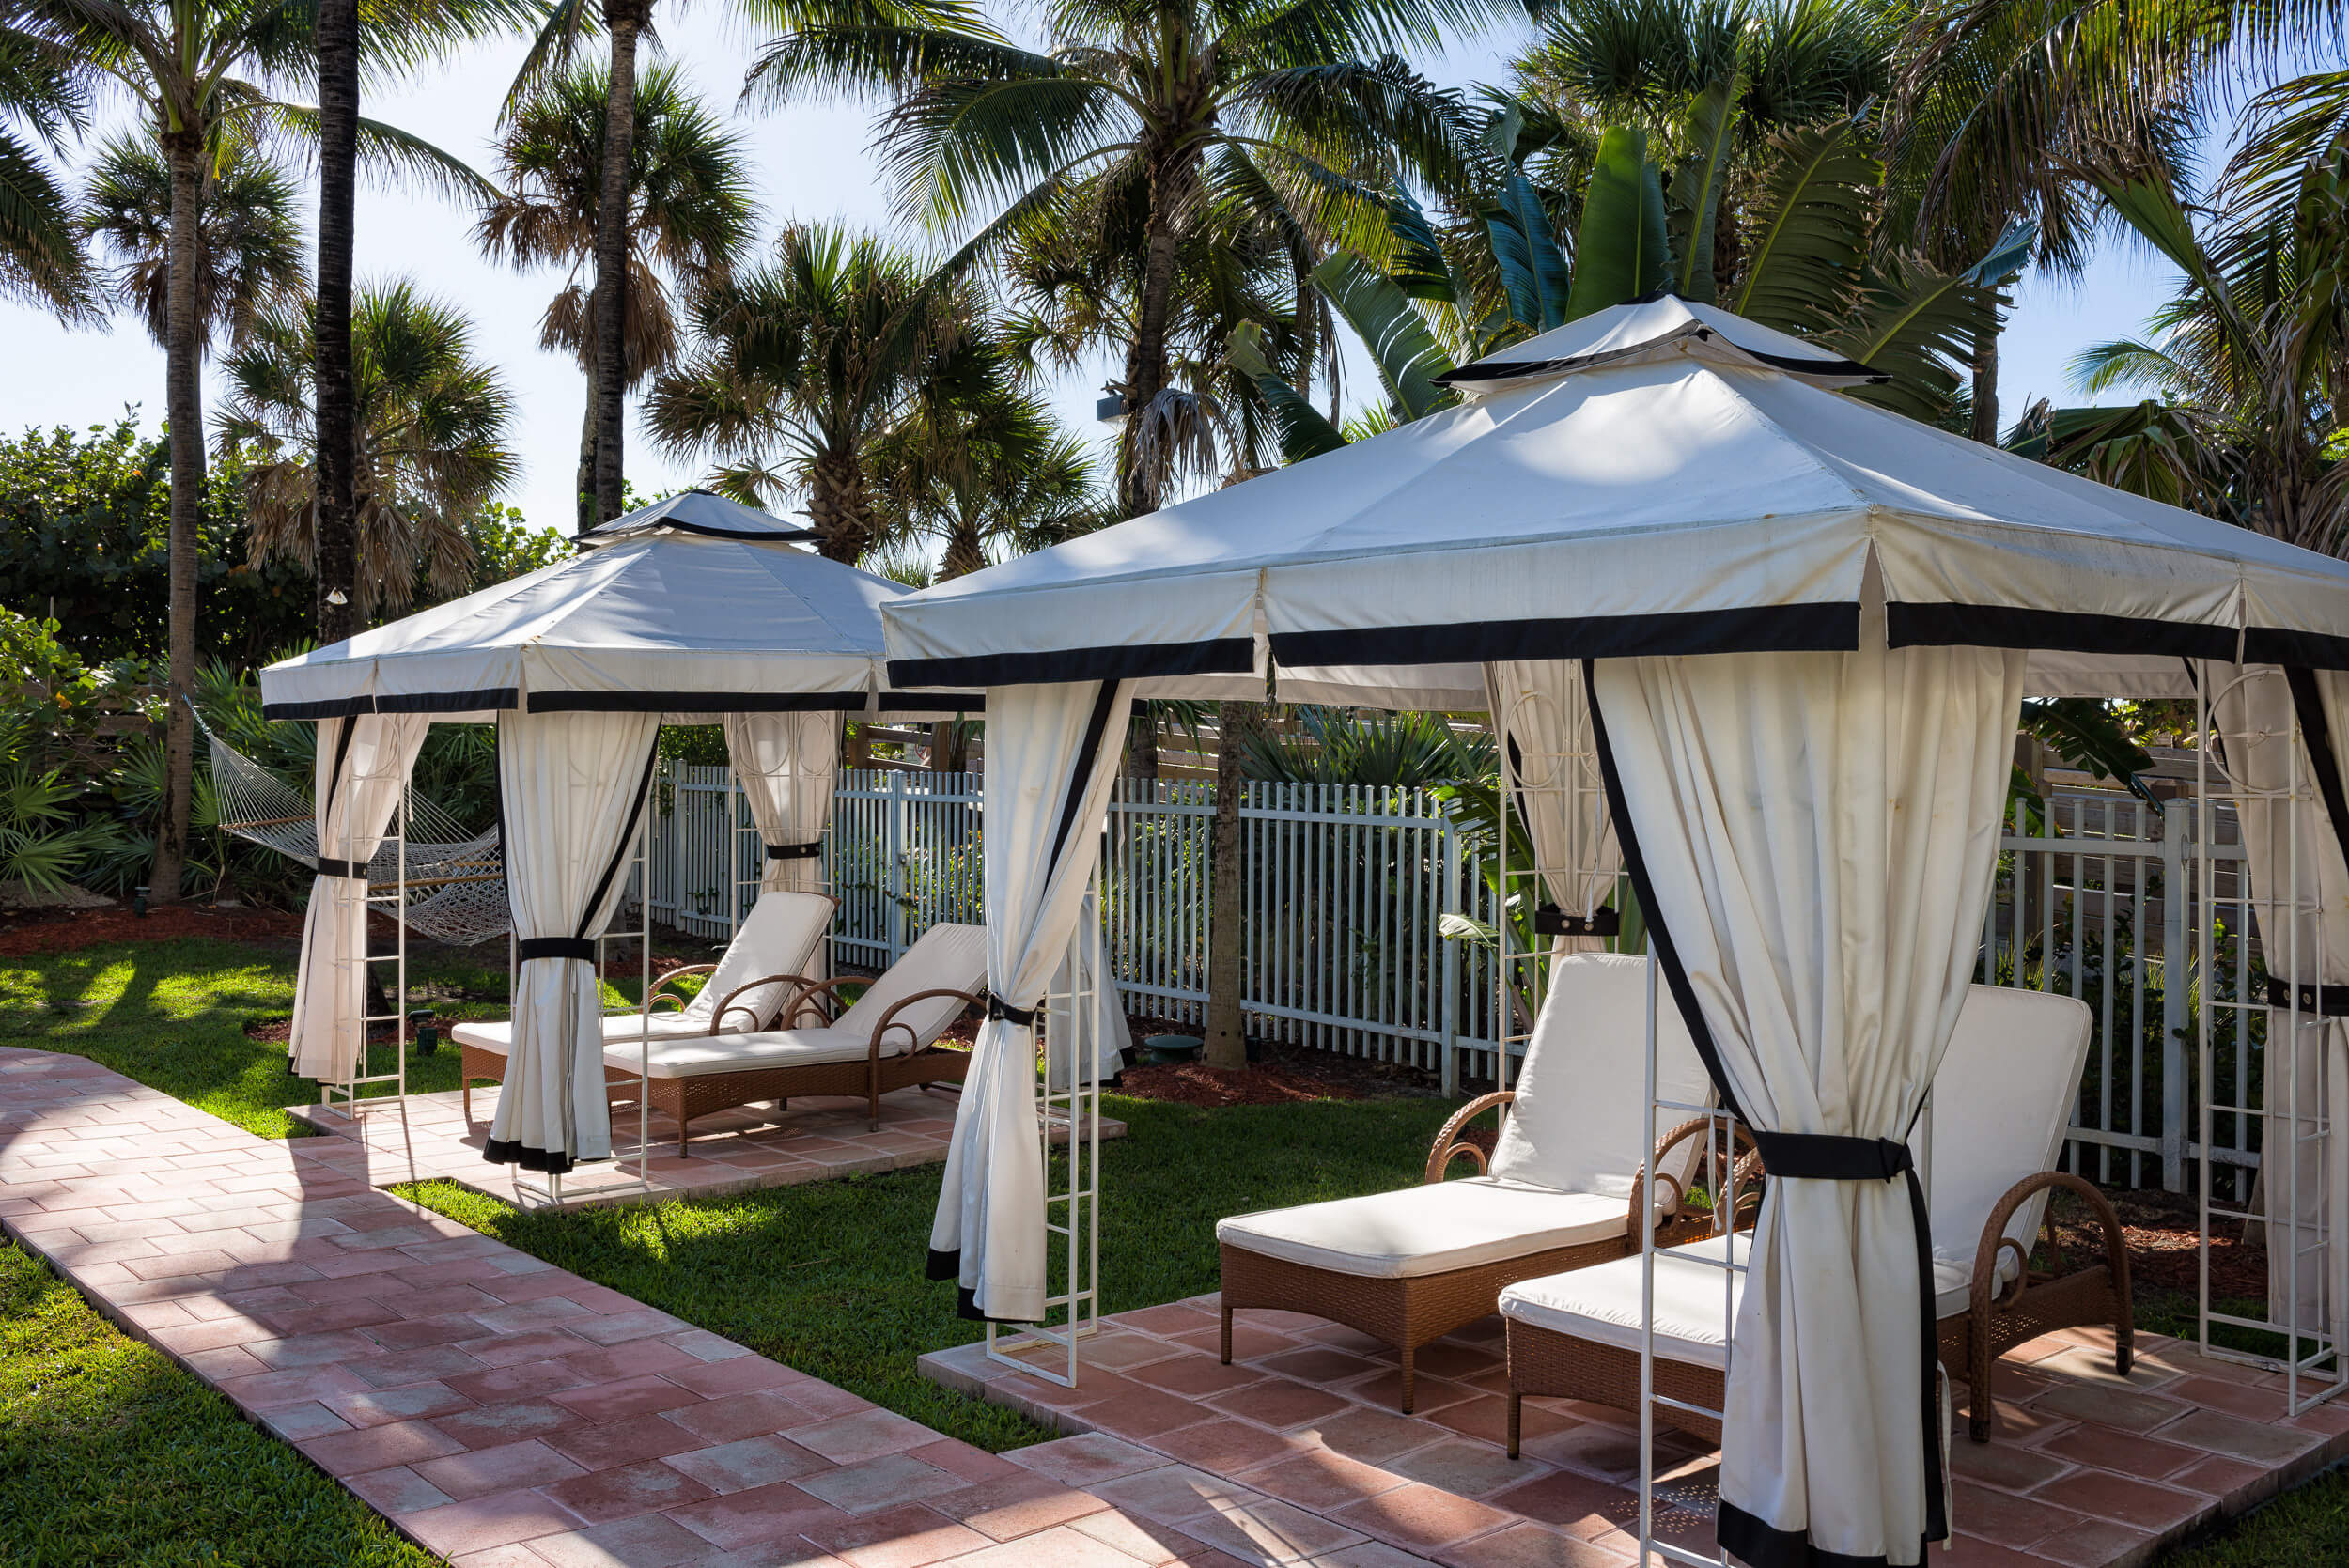 Private cabanas with lounge chairs | Westgate South Beach Oceanfront Resort